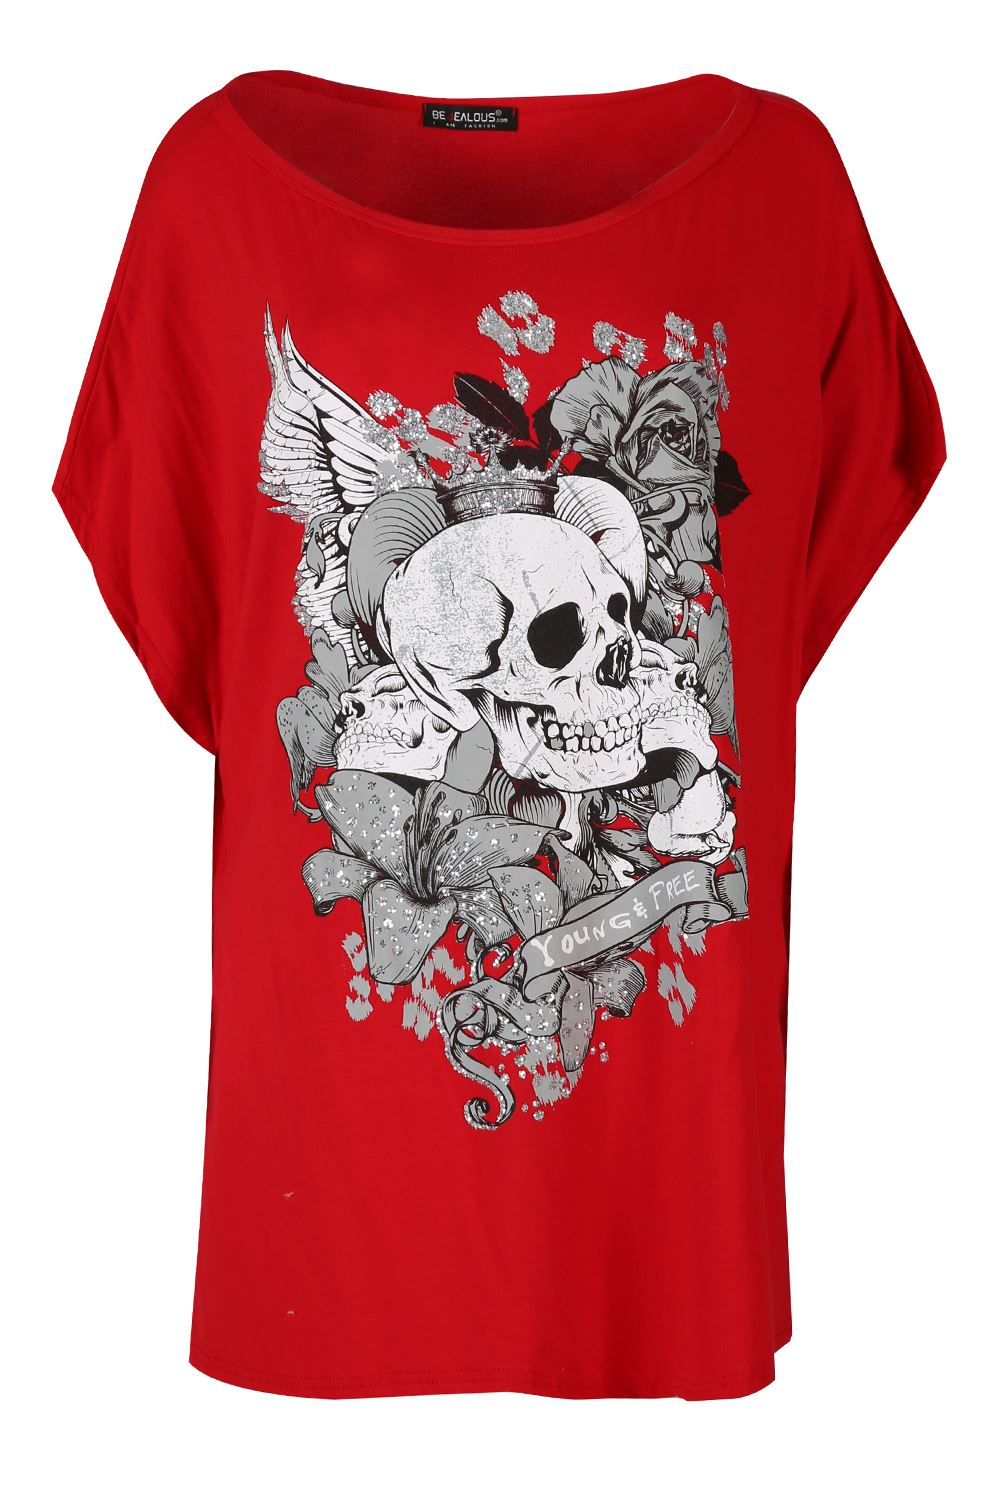 Find high quality Skull Women's T-Shirts at CafePress. Shop a large selection of custom t-shirts, longsleeves, sweatshirts, tanks and more.